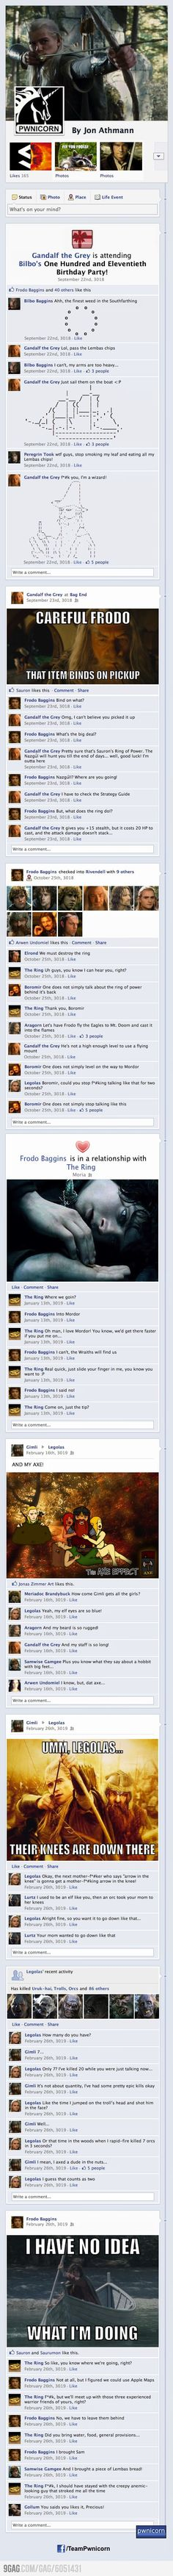 LOTR on Facebook; more epic than the film